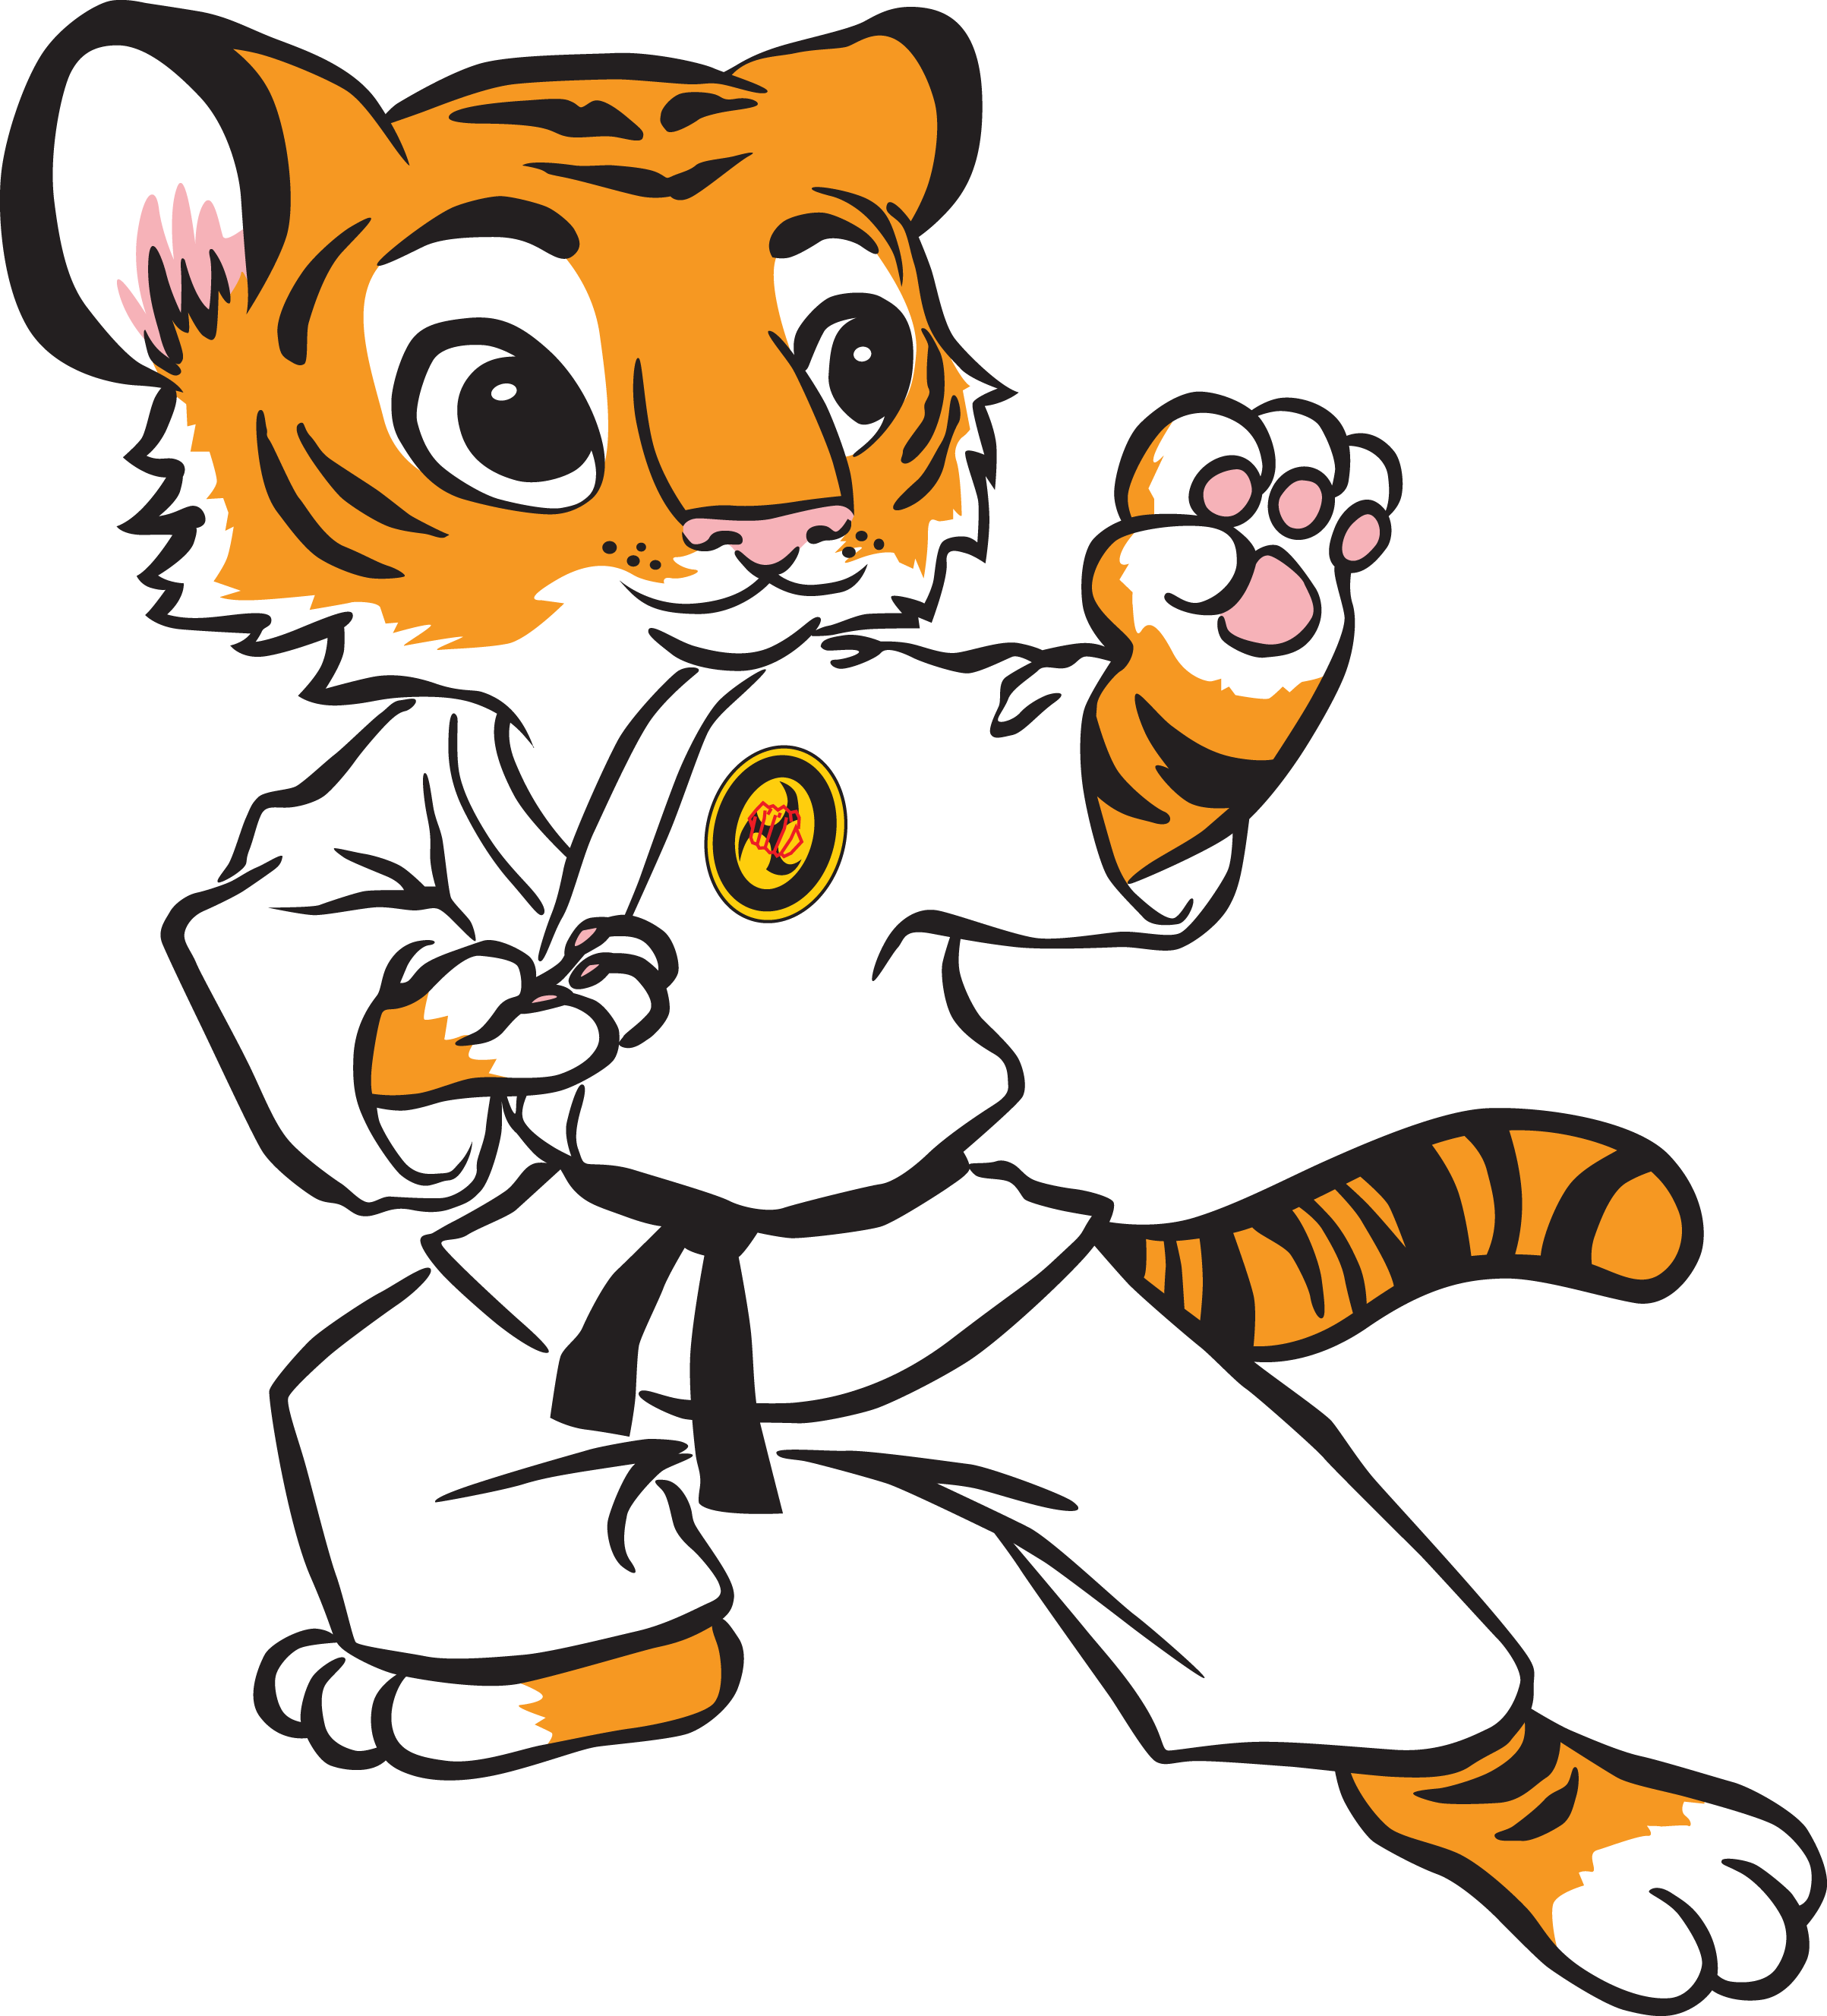 Korean clipart kid martial art Karate and Cliparts Inspiration Others